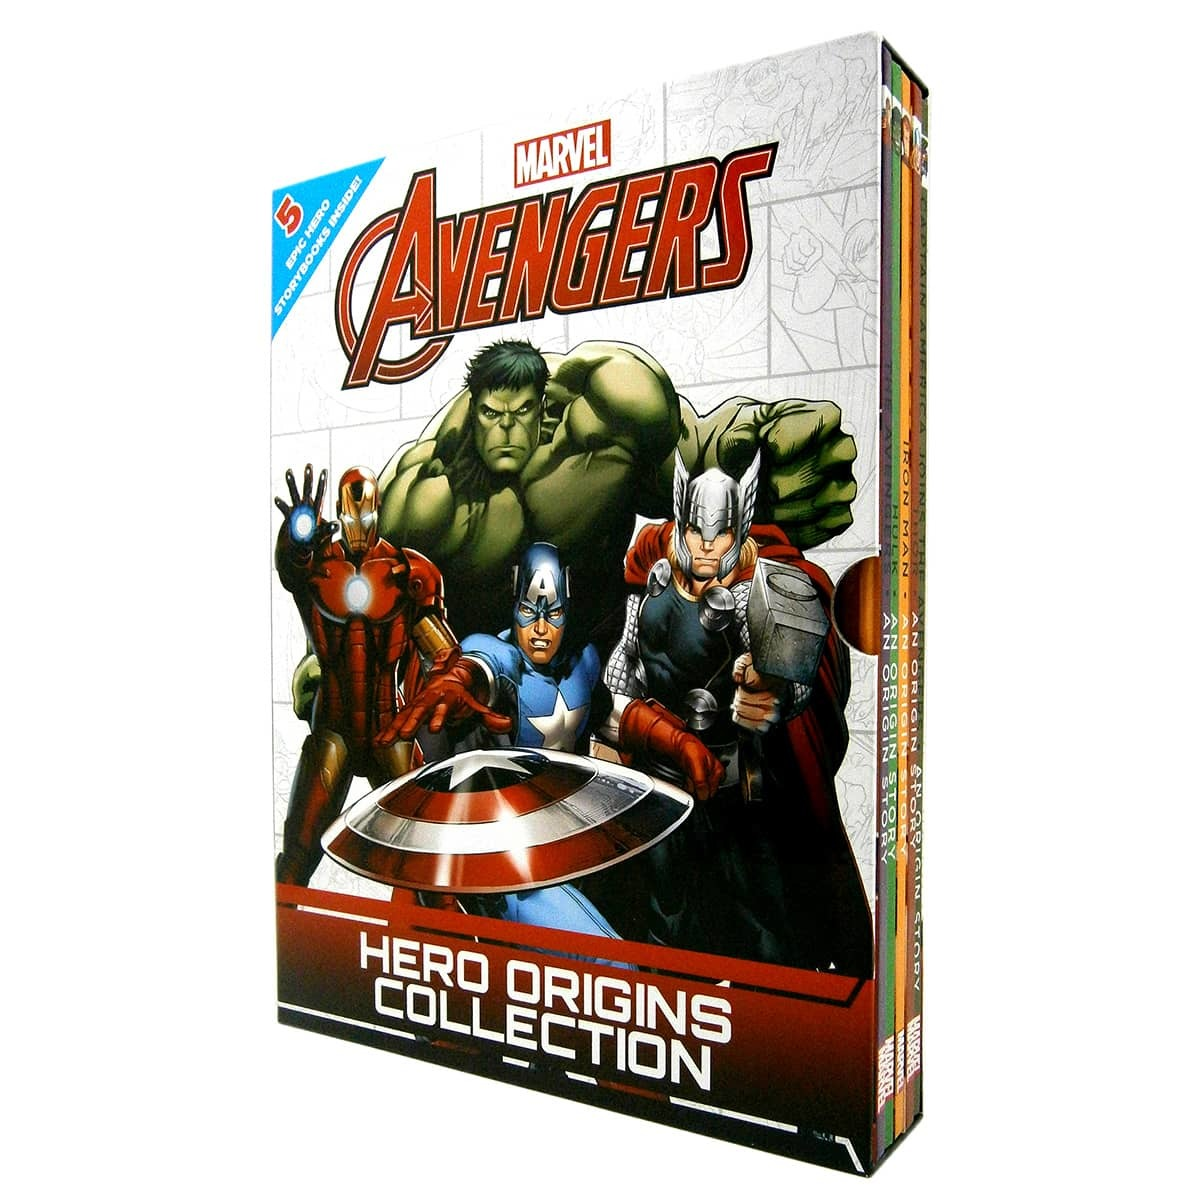 Marvel Avengers Hero Origins Collection by Marvel image